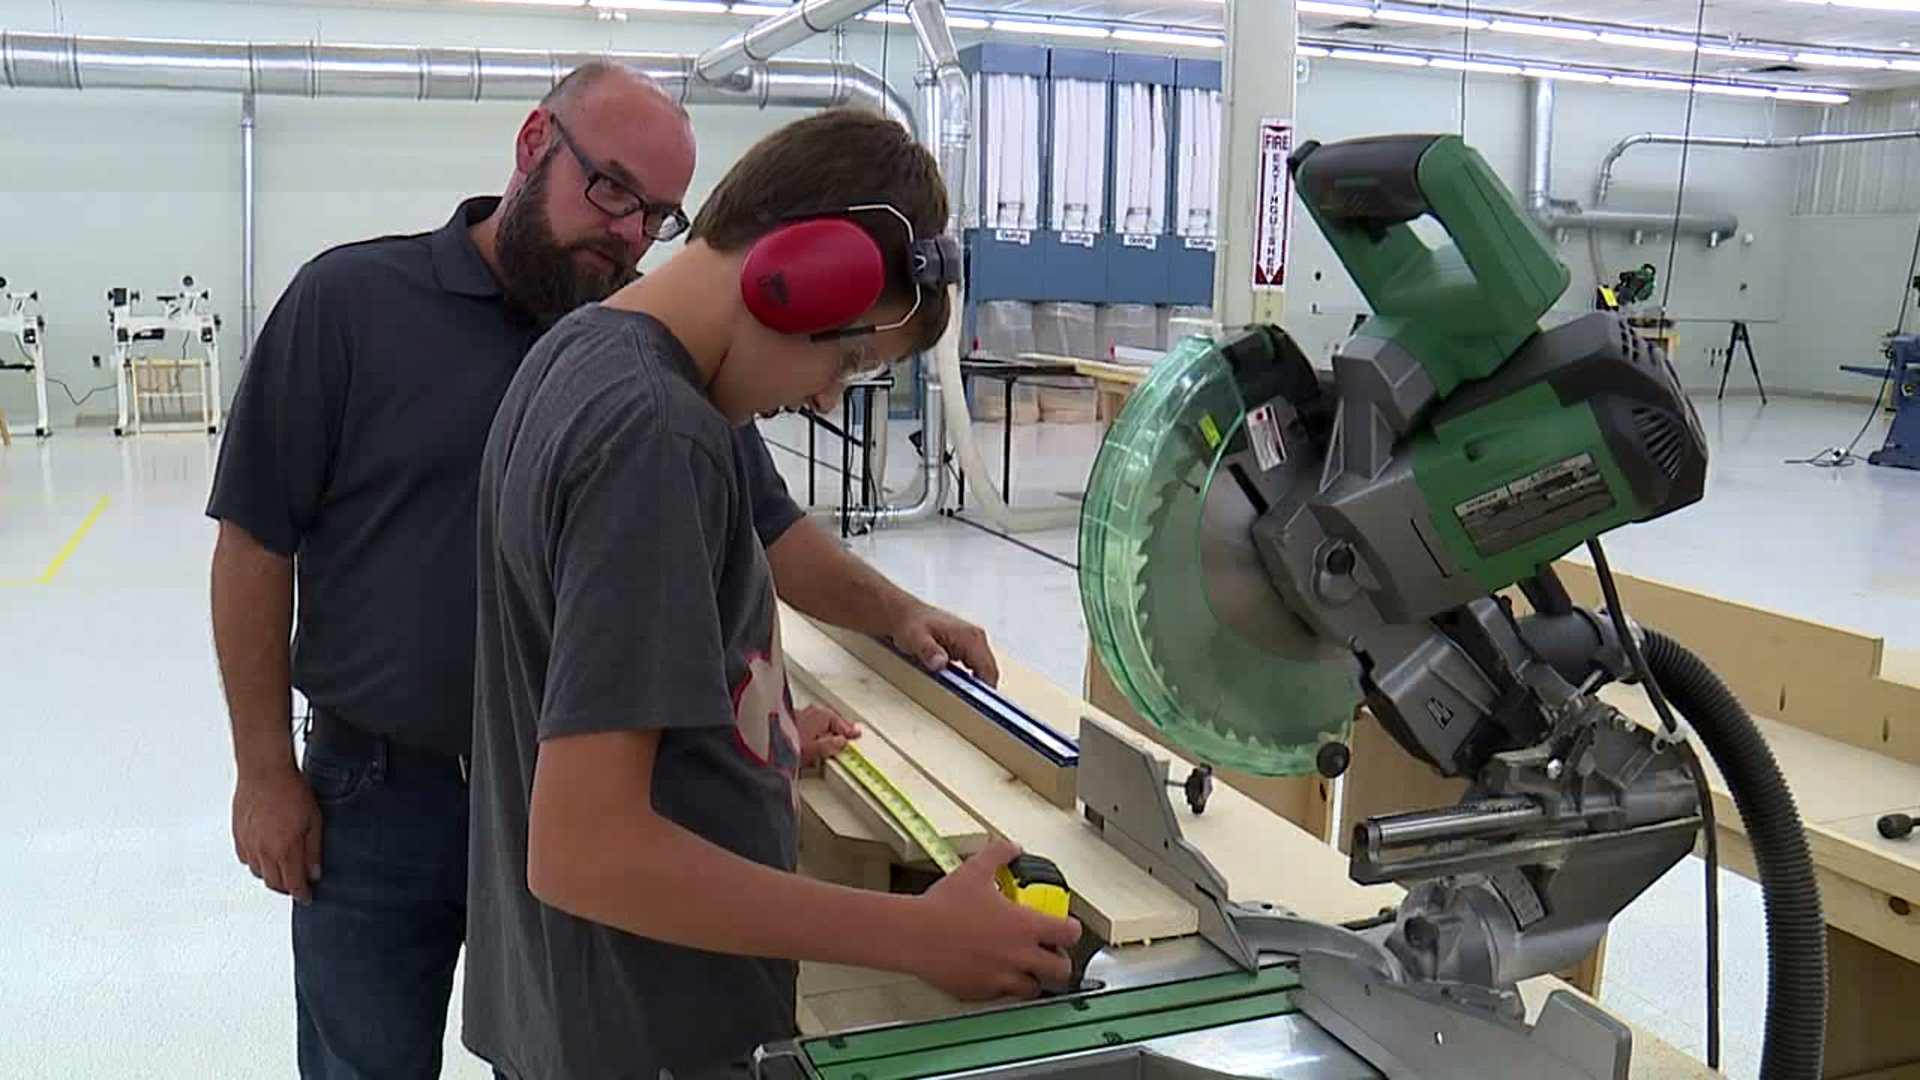 New Olathe Business Offering Woodworking Classes Mentorships For Kids And Teens Fox 4 Kansas City Wdaf Tv News Weather Sports